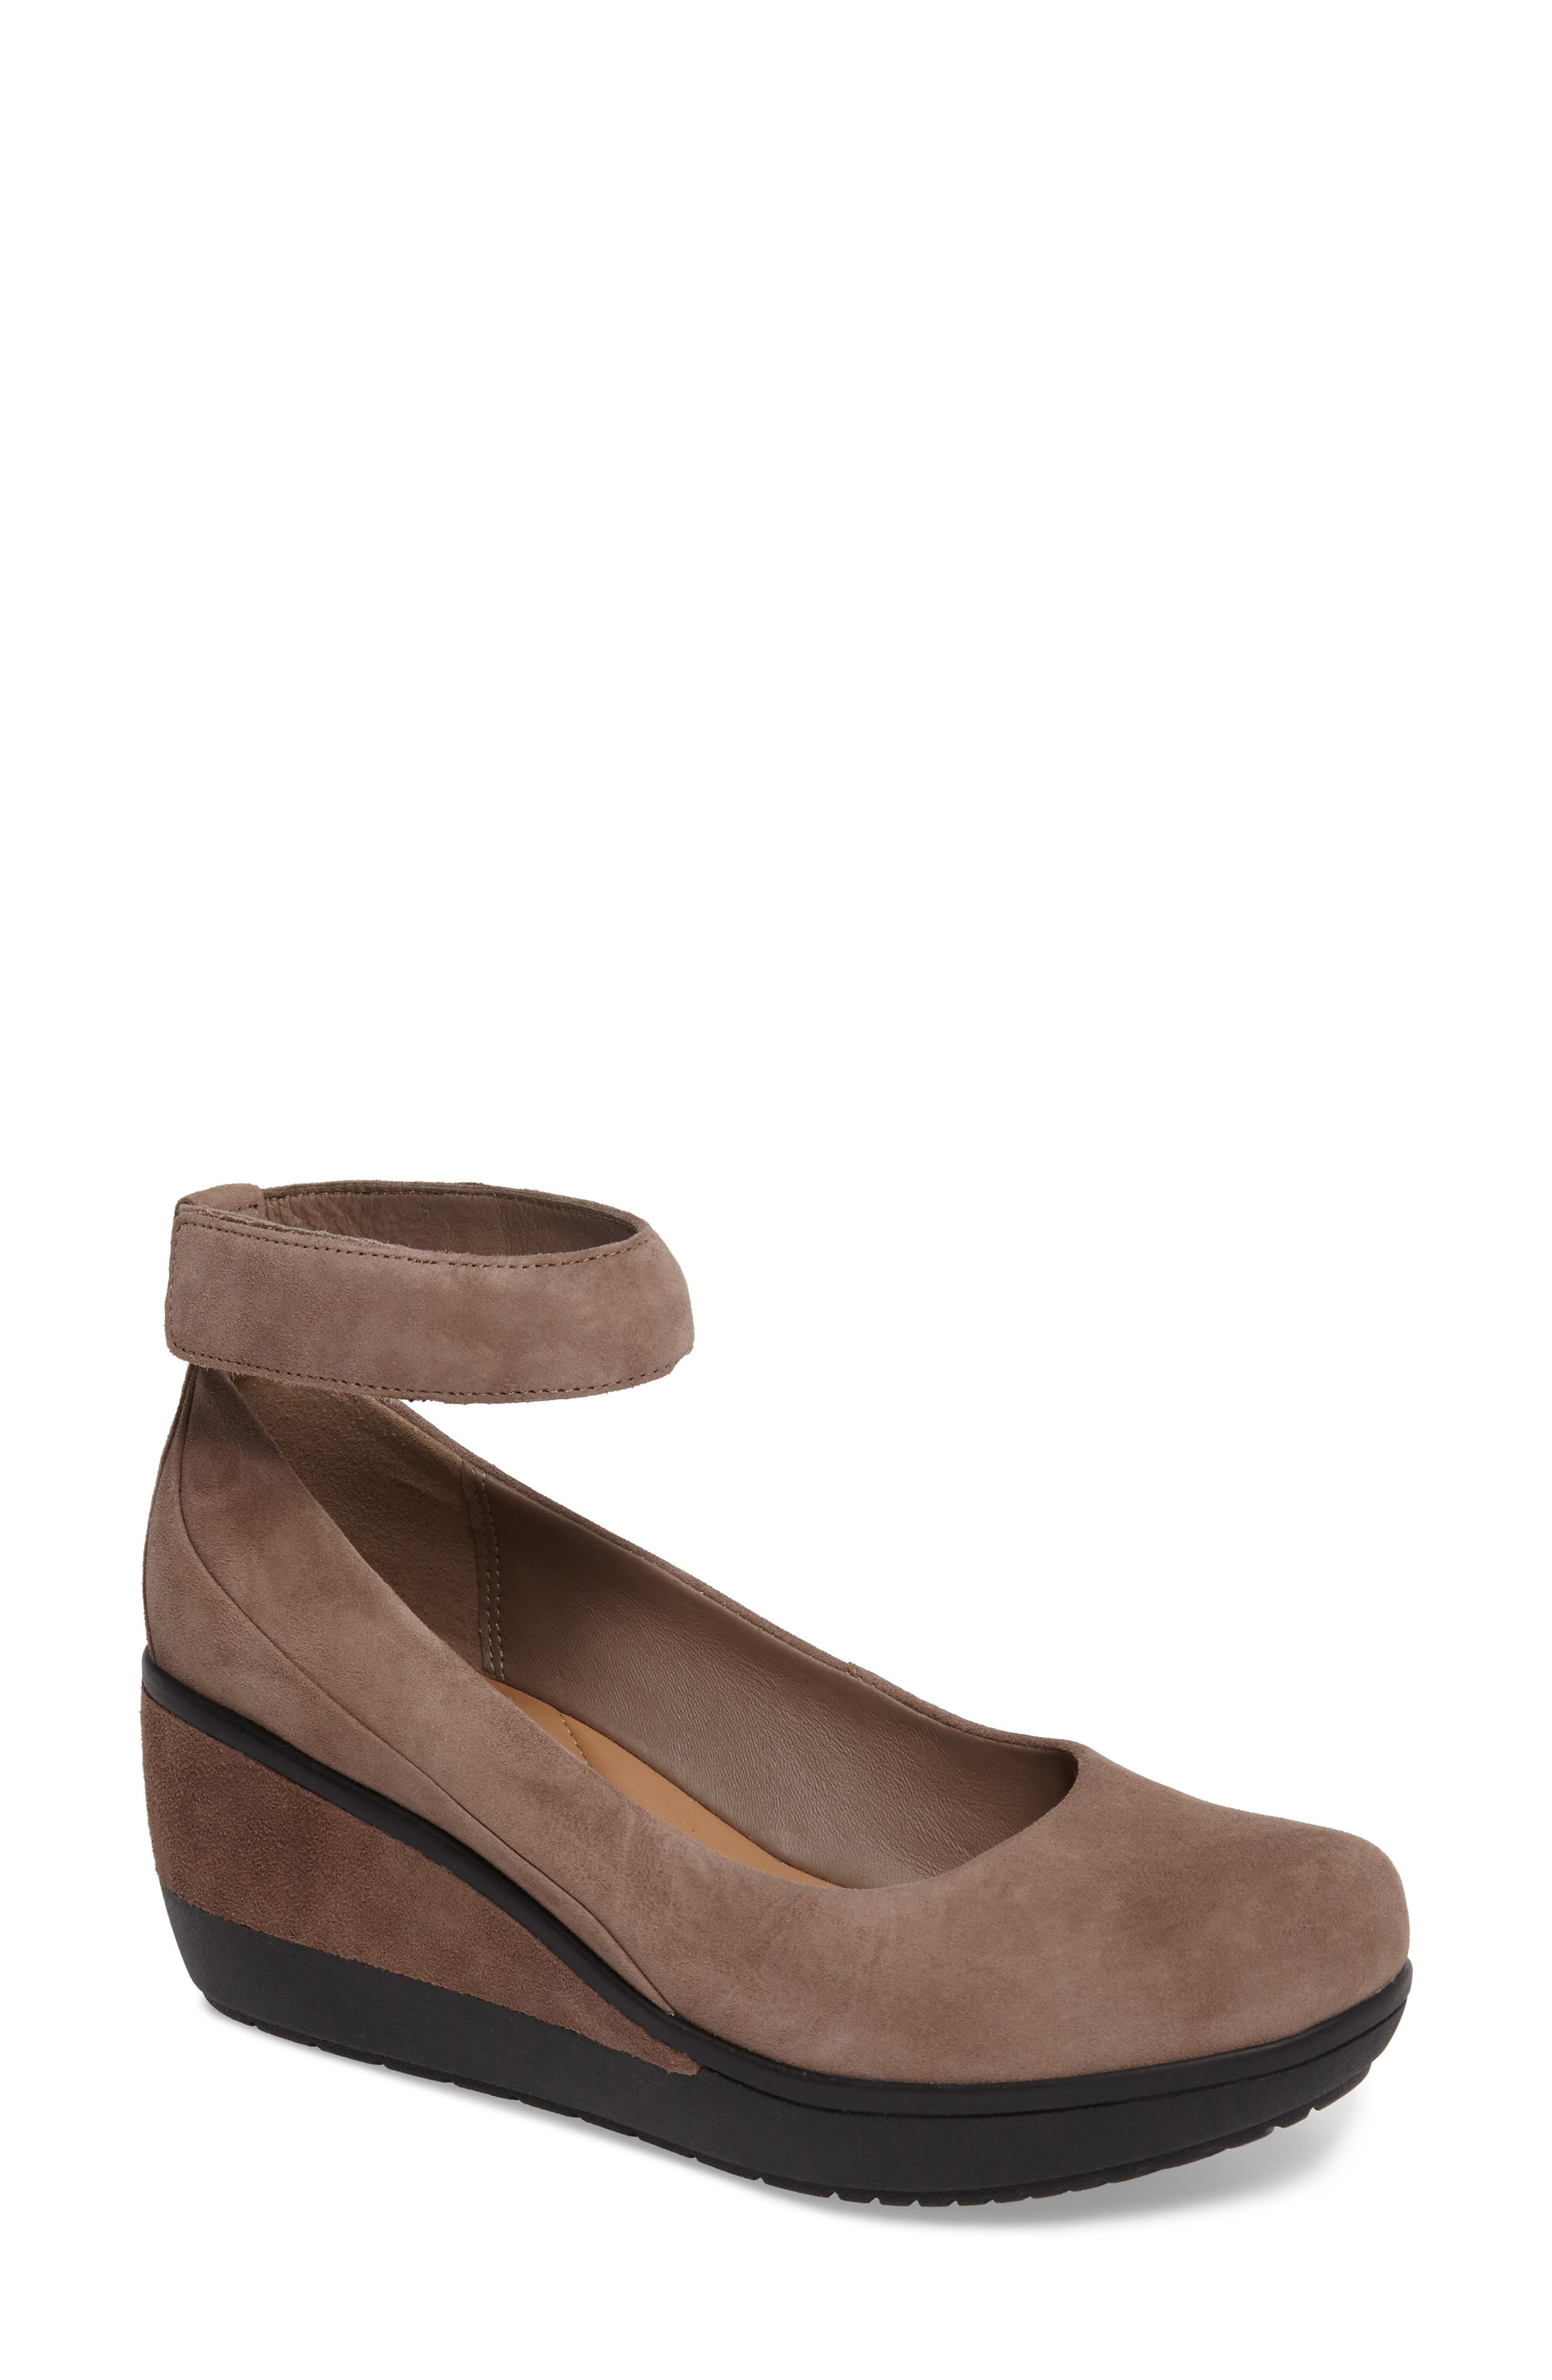 Wynnmere Fox Ankle Strap Pump,                         Main,                         color, PEBBLE SUEDE